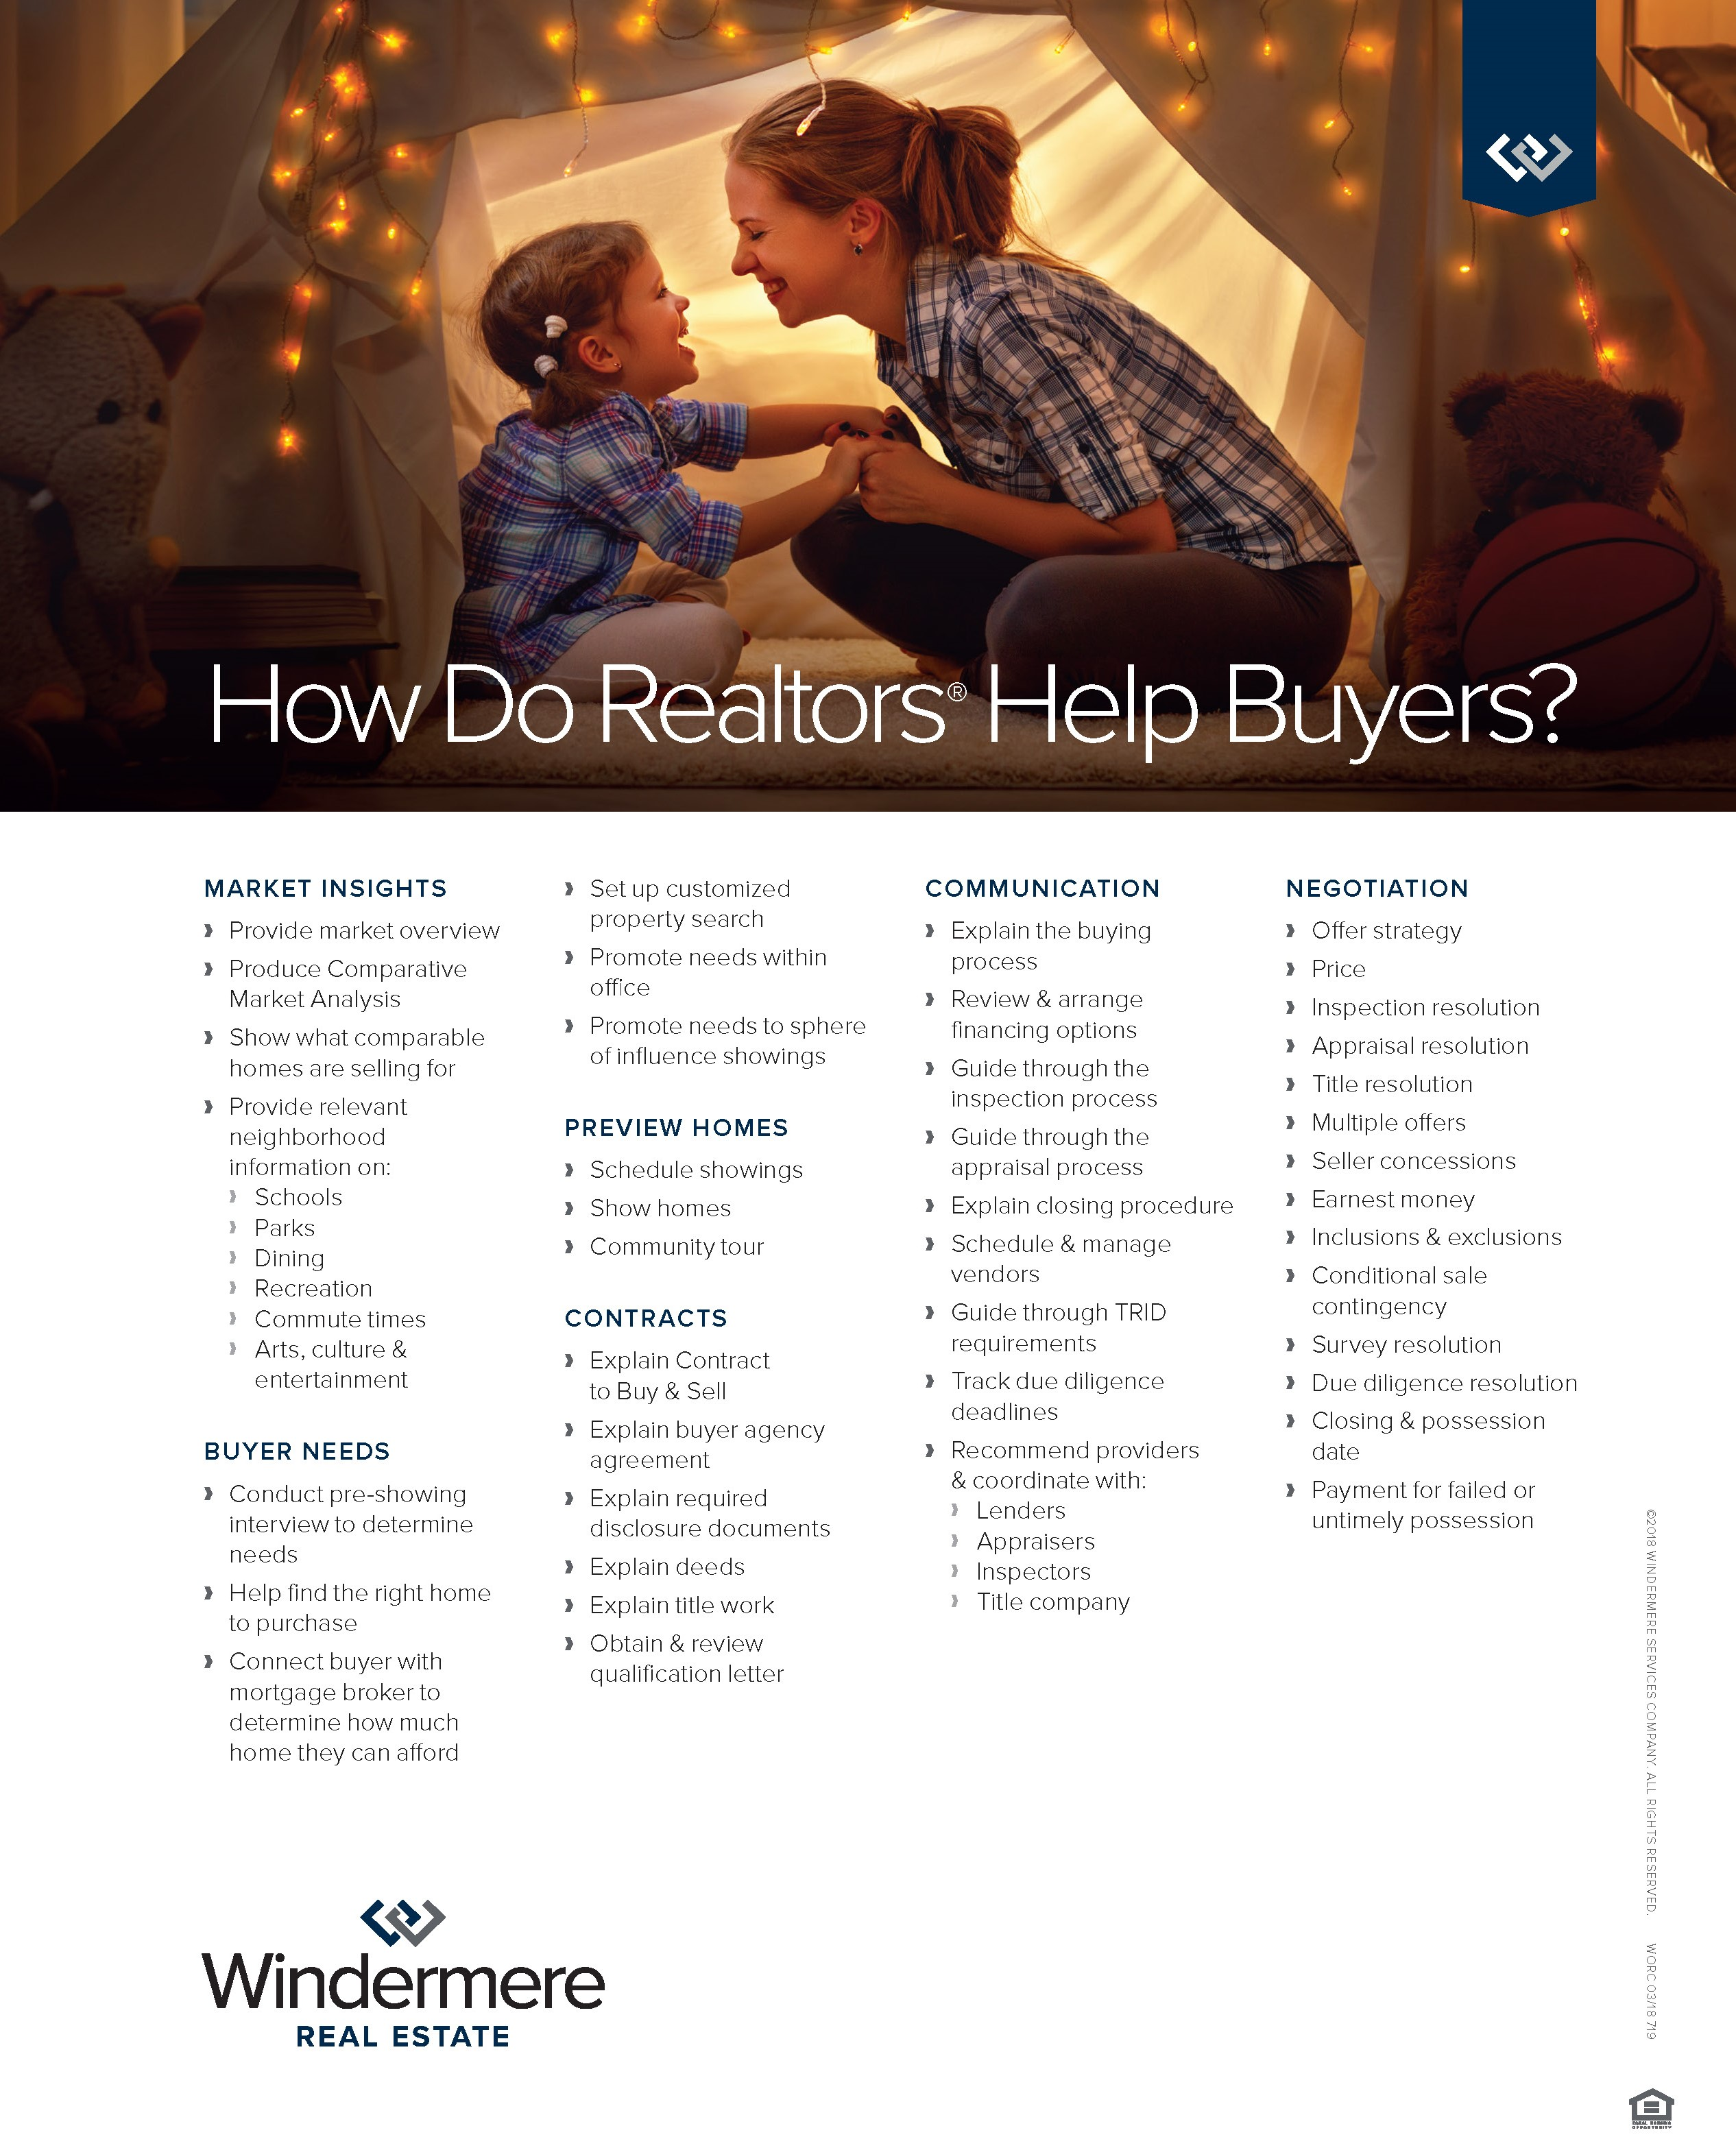 Services Realtors Provide to Buyers